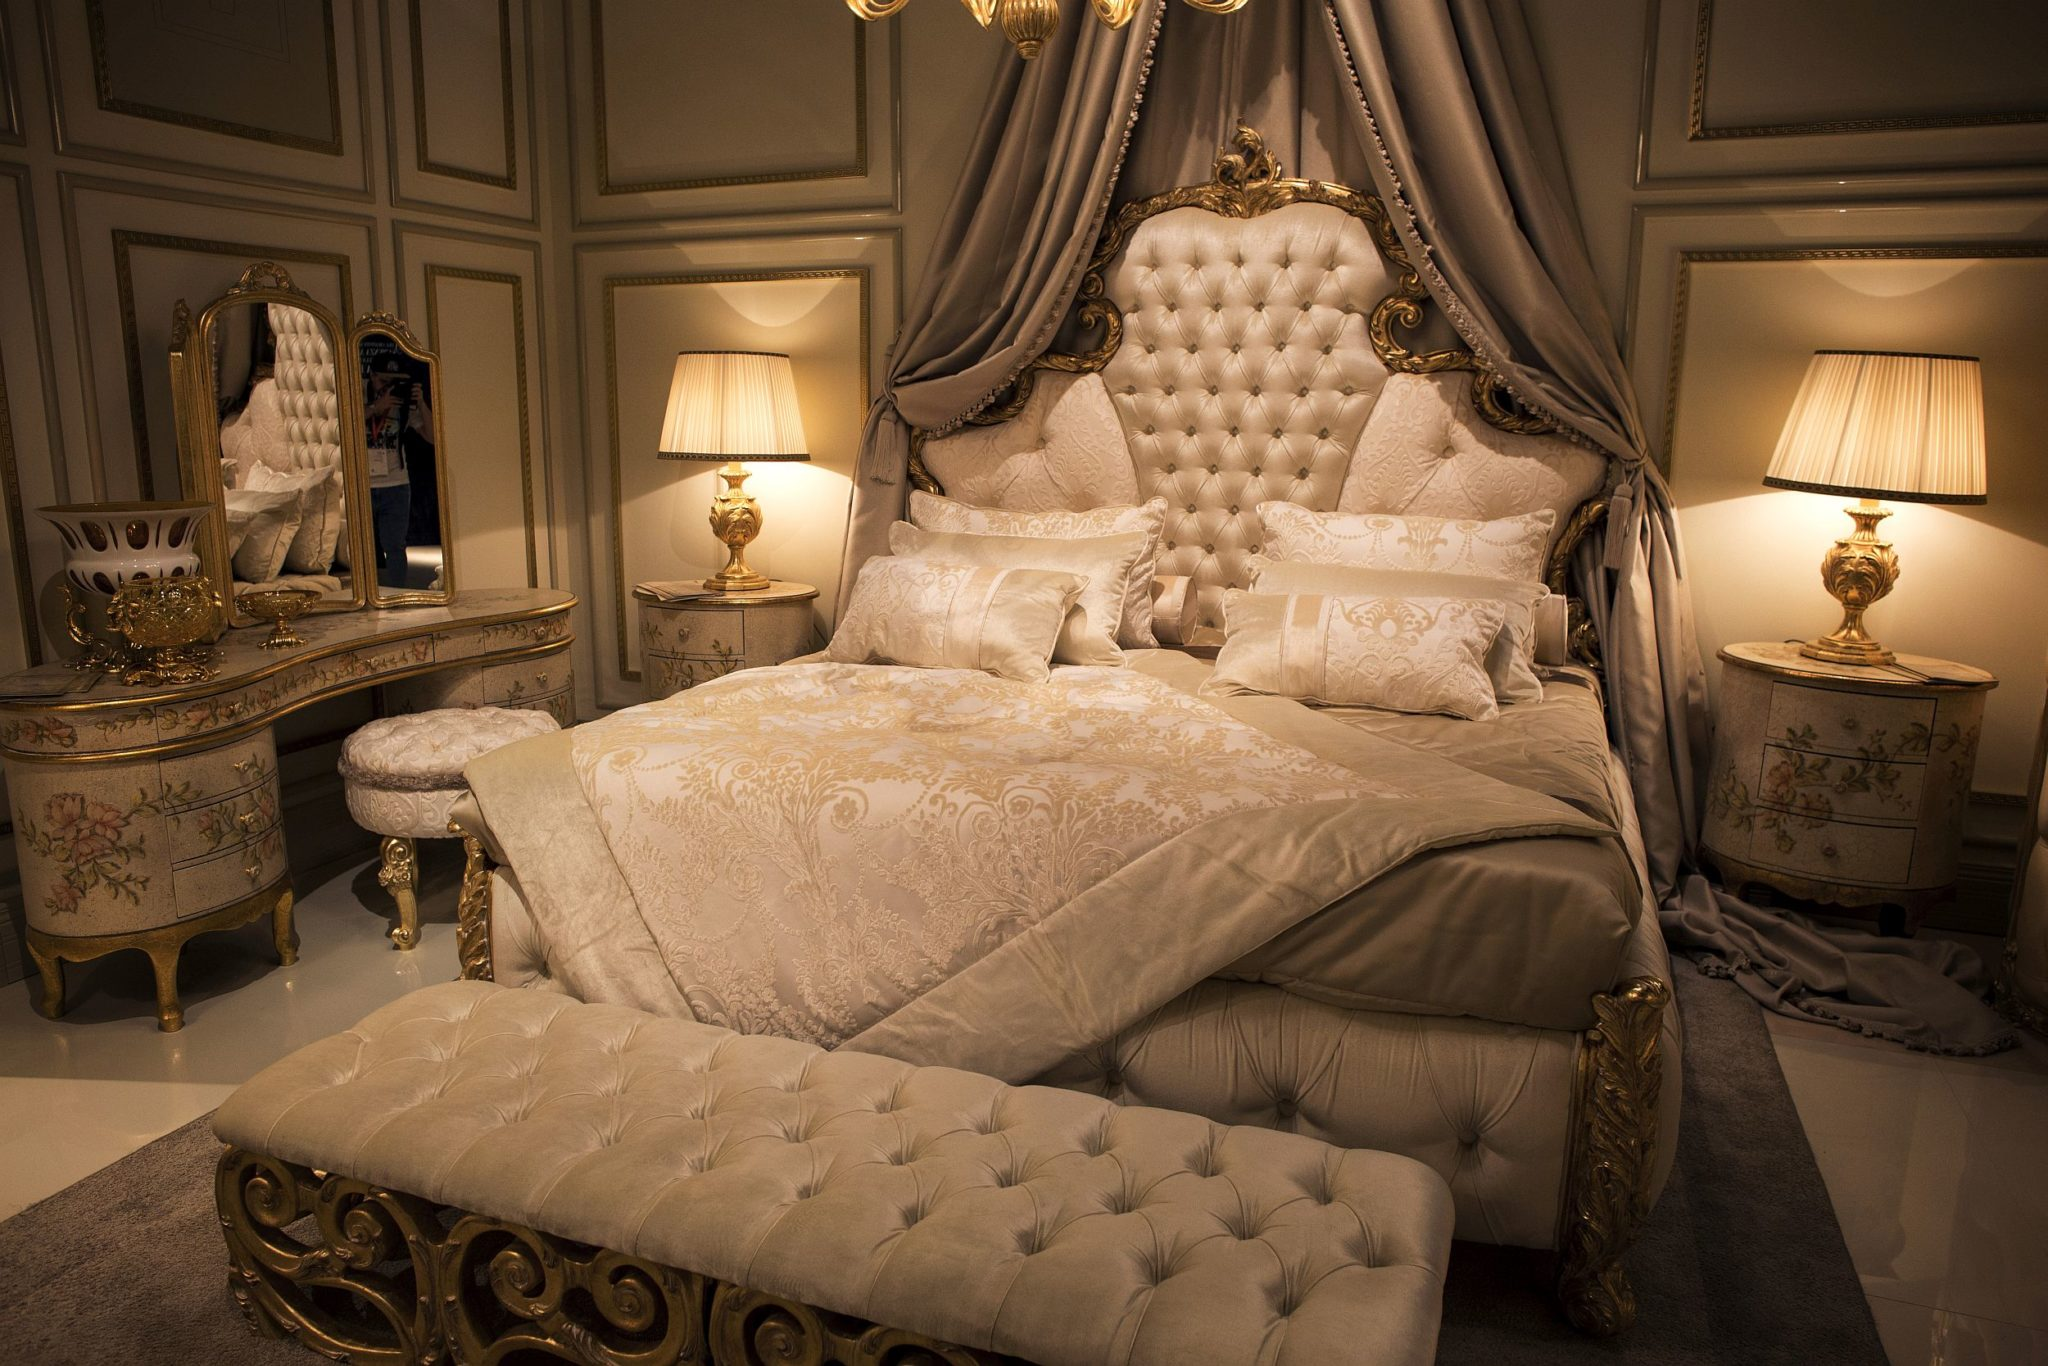 opulent bedrooms from classic to modern